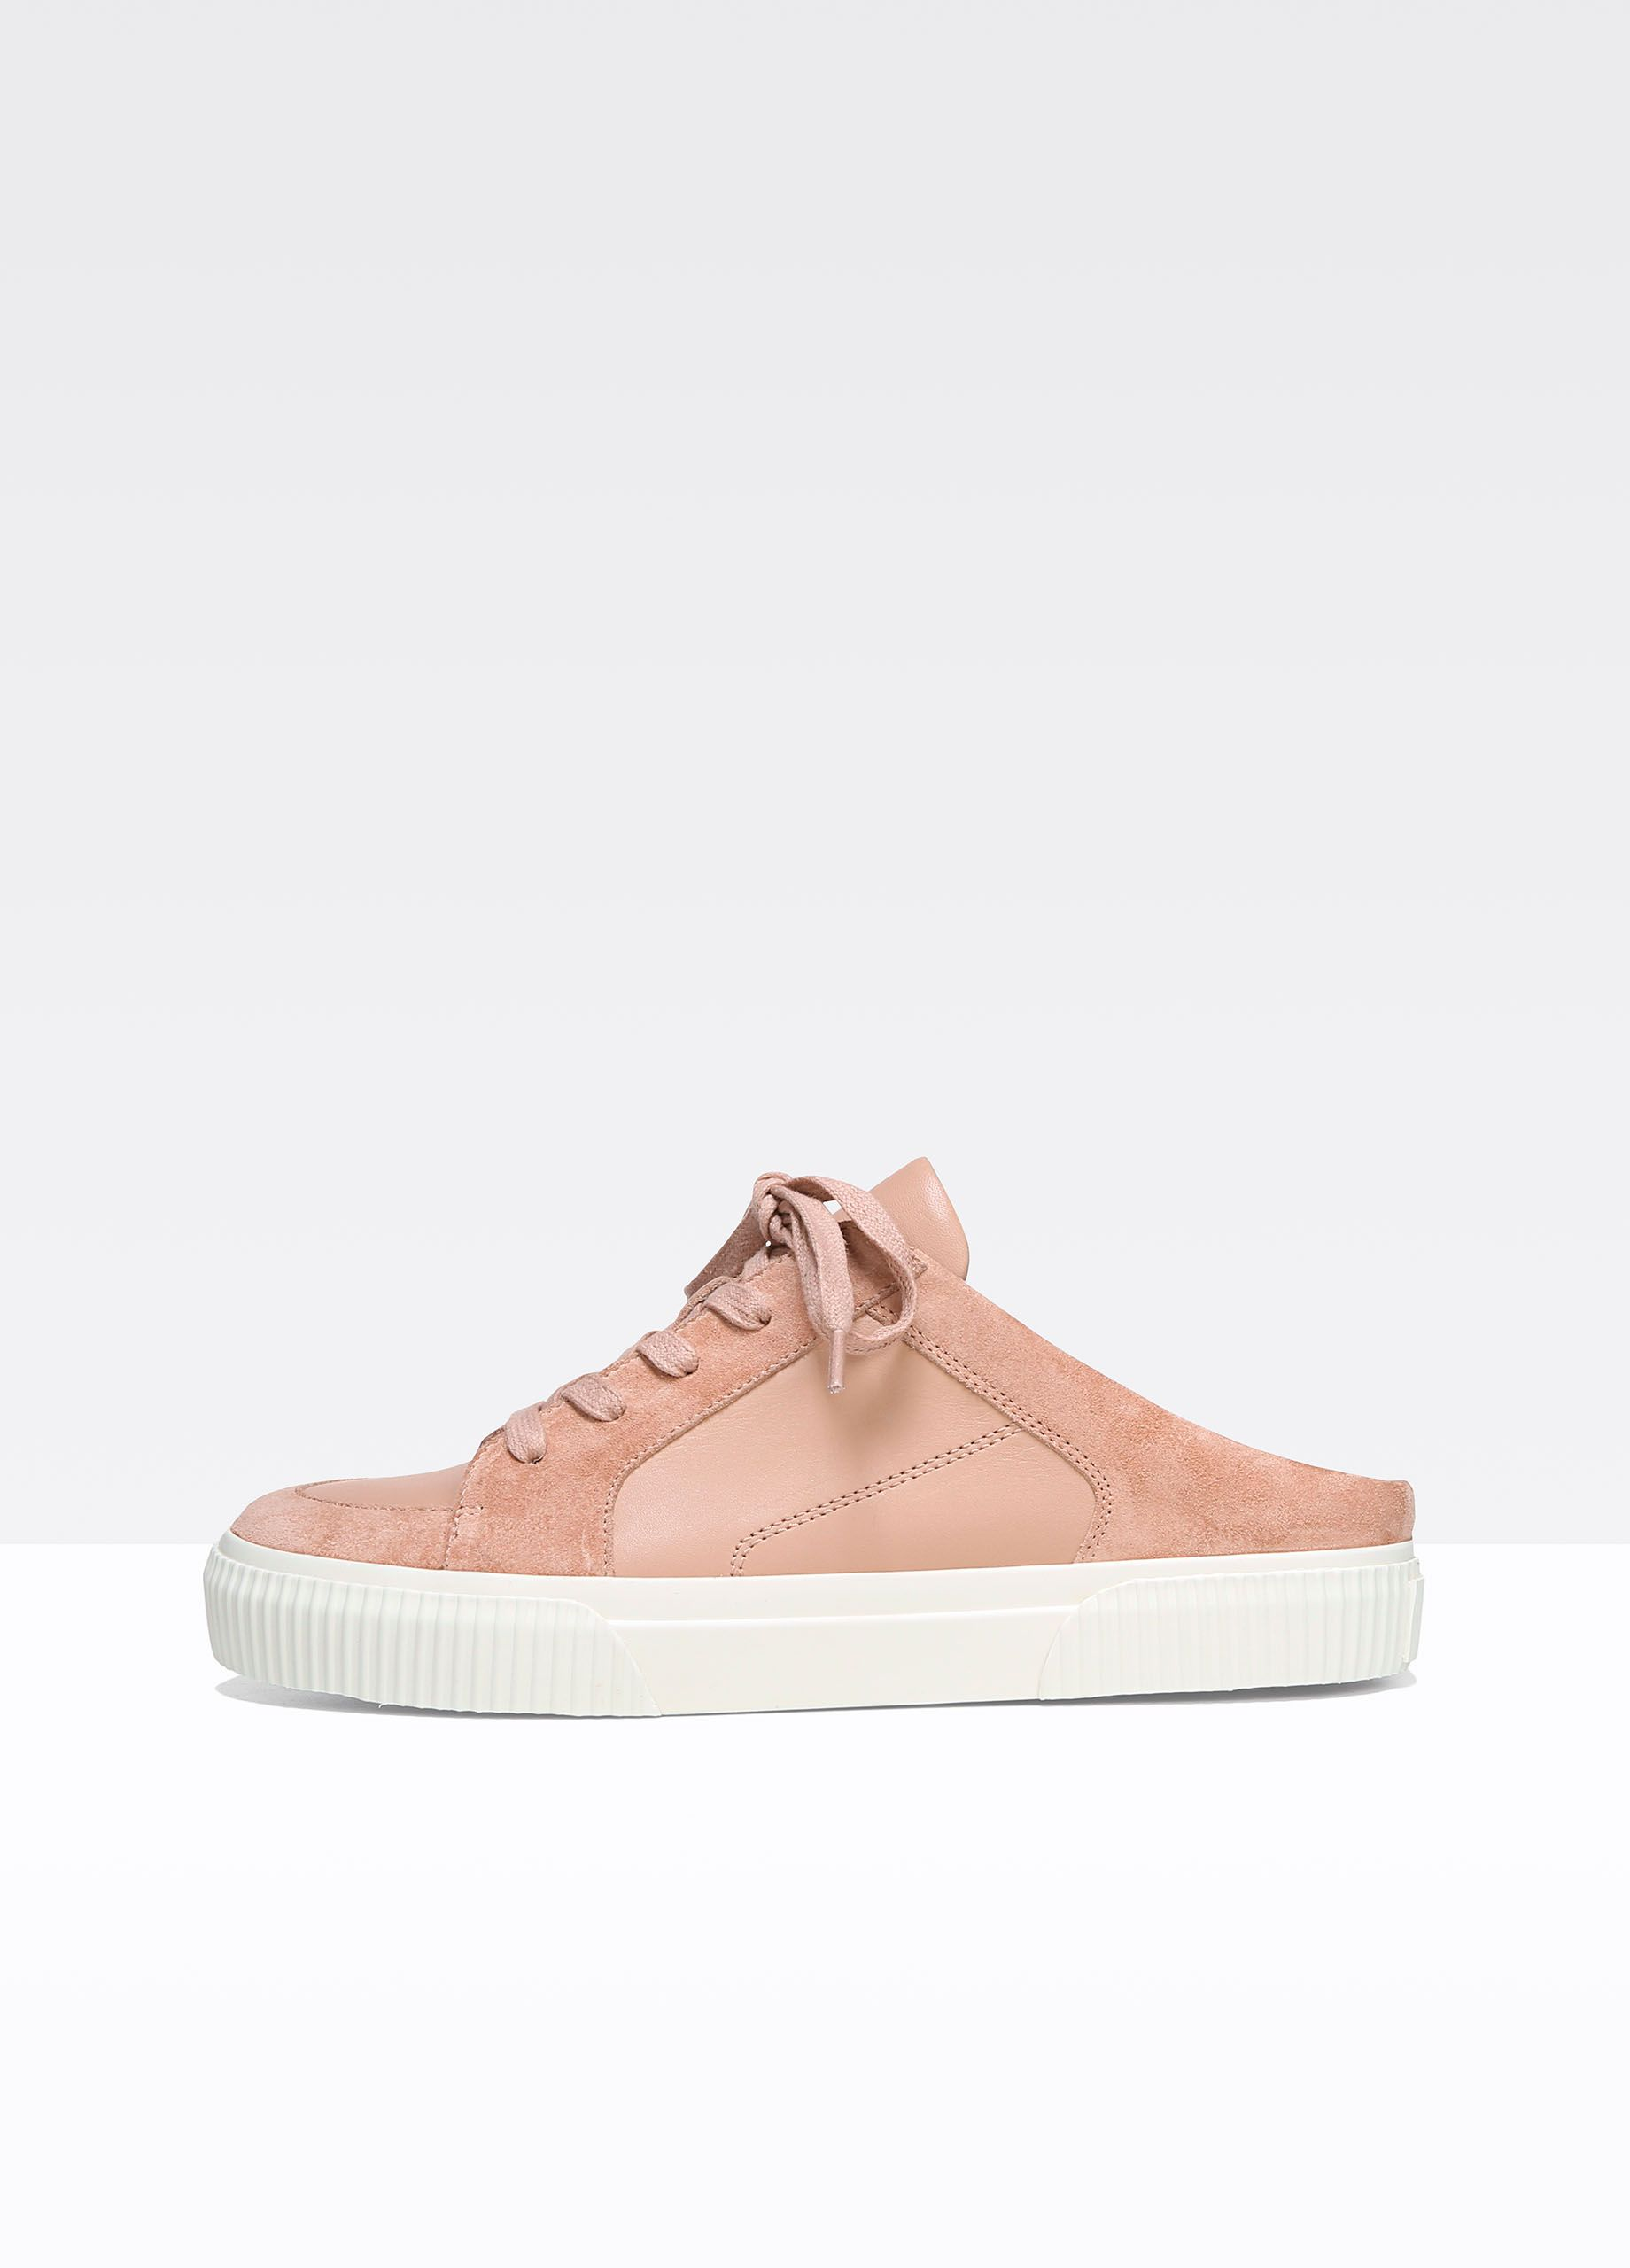 dd028a0ca25a2 Kess Backless Leather and Suede Sneakers